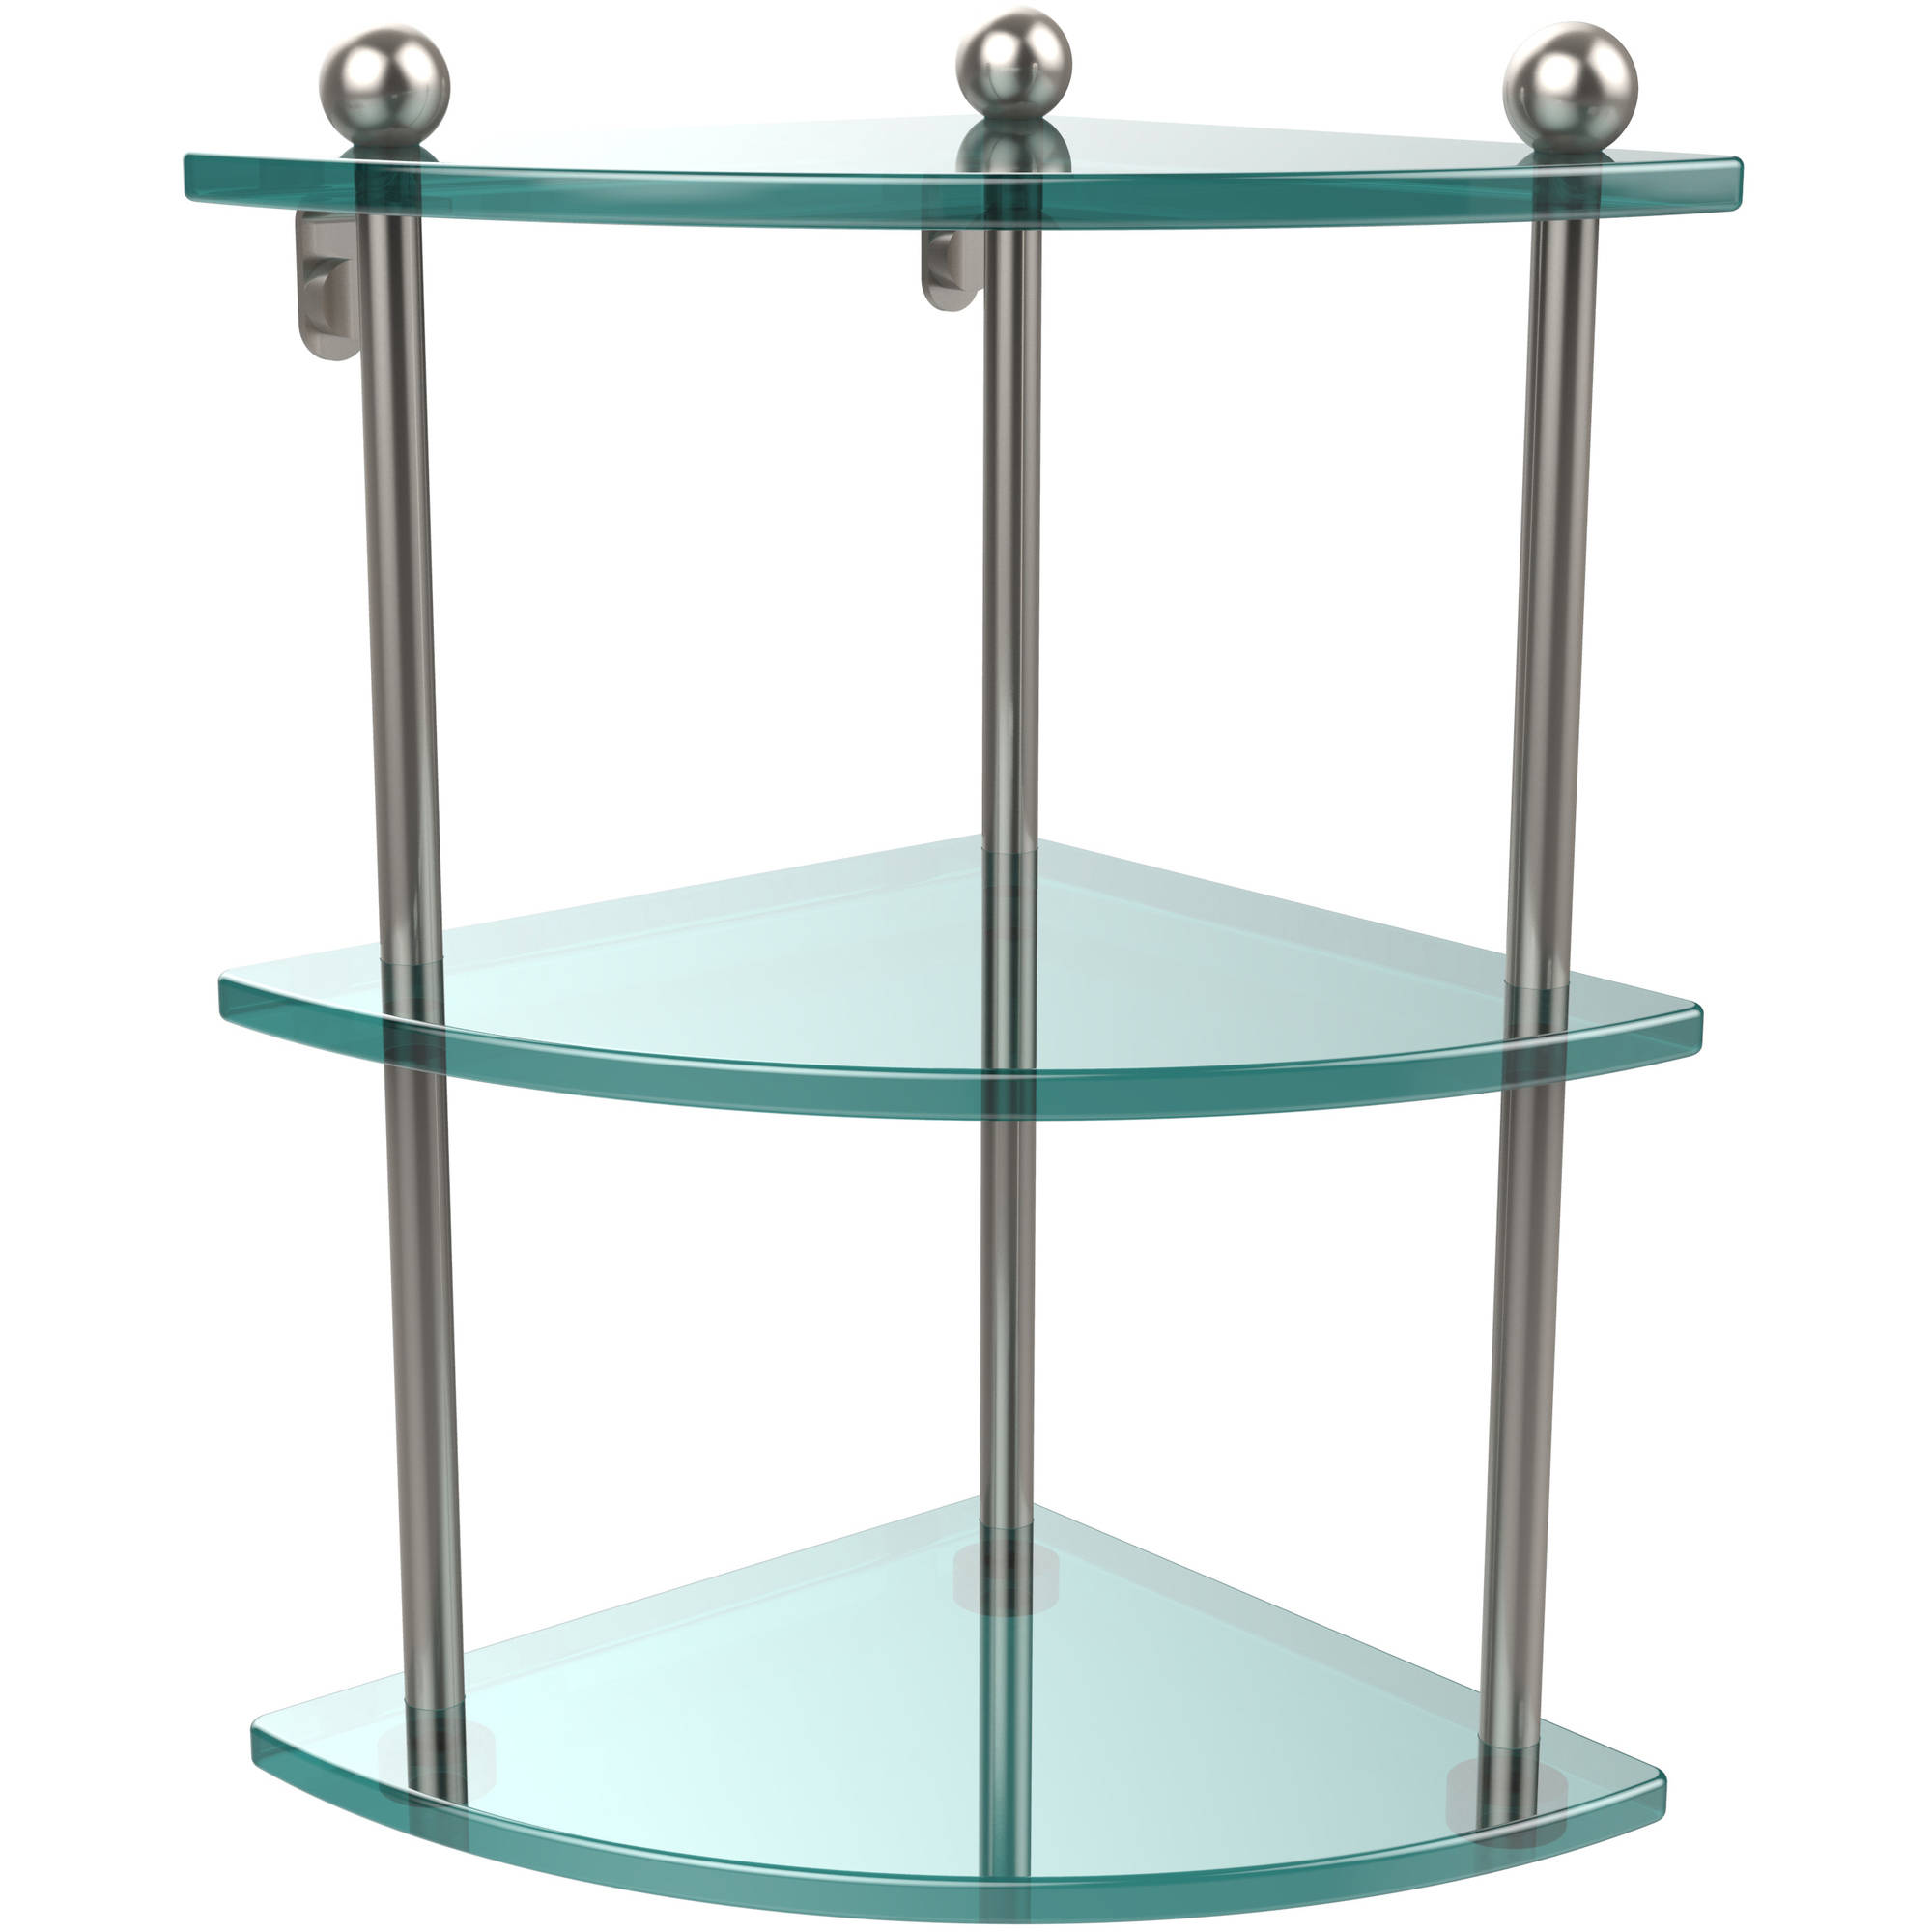 3-Tier Corner Glass Shelf (Build to Order)